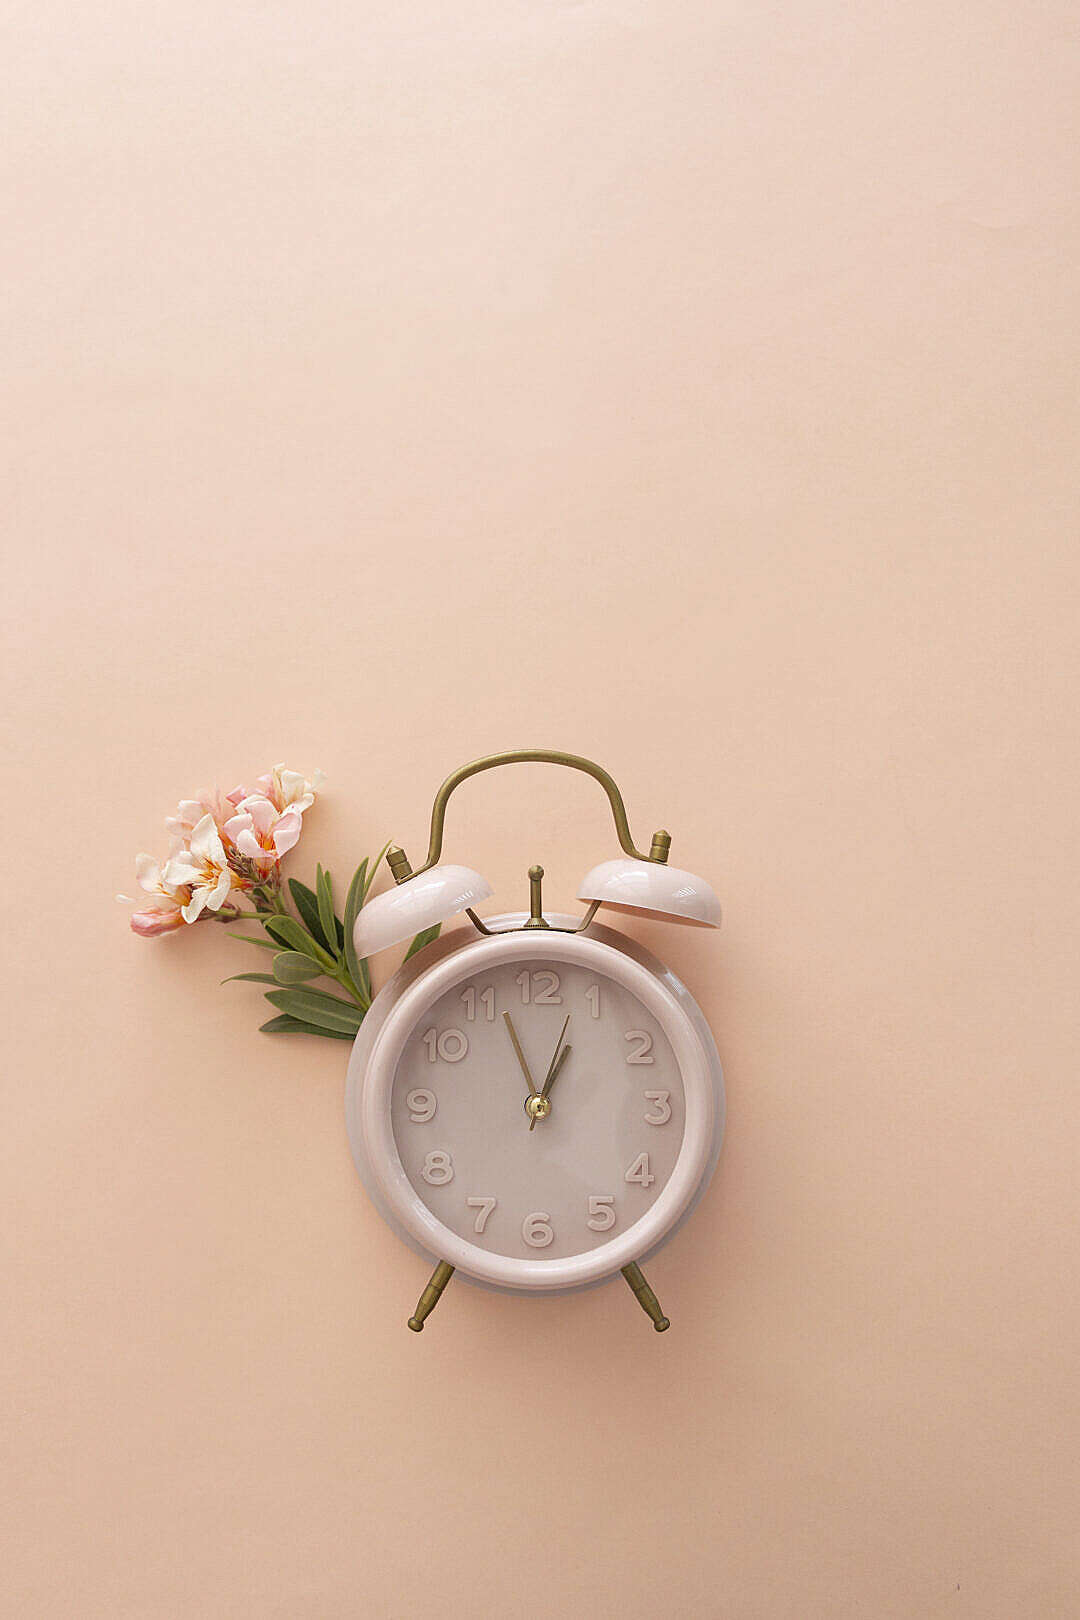 Download Retro Clock with Flower on Pastel Background FREE Stock Photo